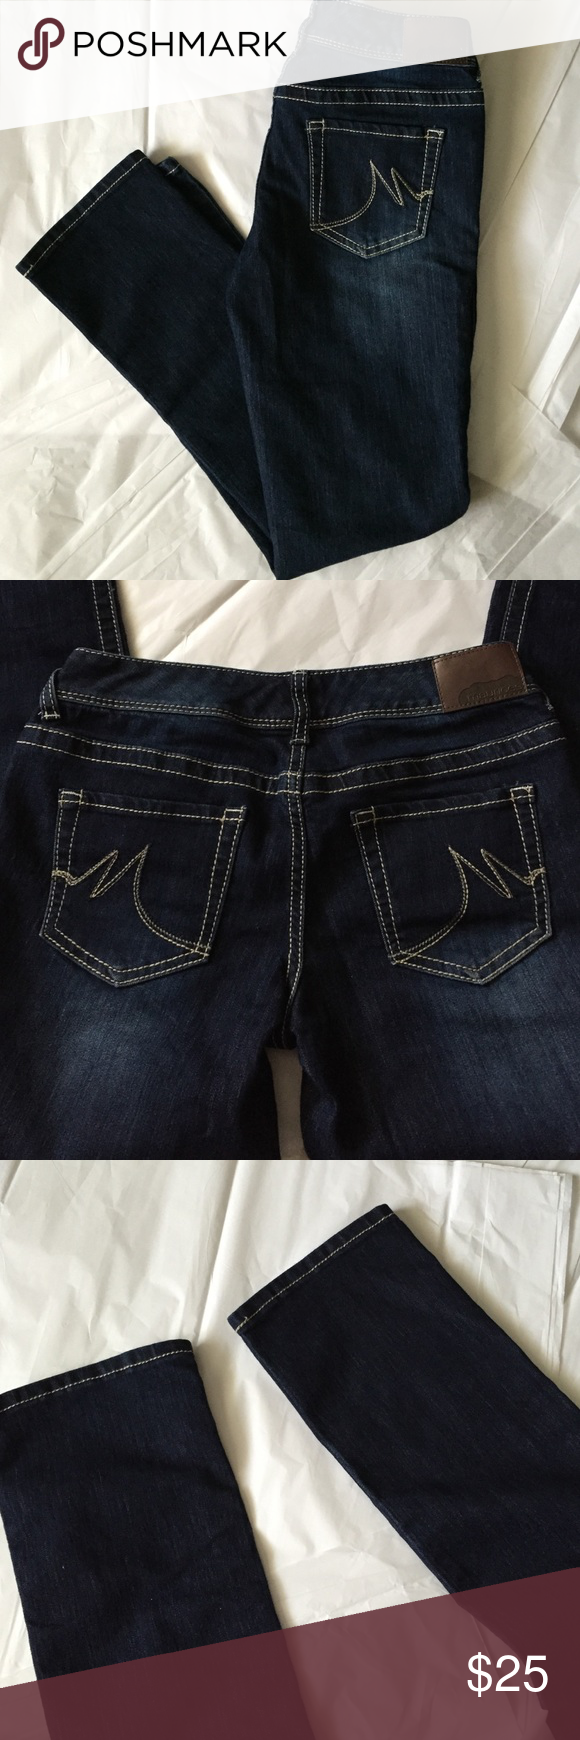 Maurices Straight leg Jeans! Maurices straight leg Jeans! Size 3/4 Short! Excellent condition! Inseam 30 inches. Cotton, polyester, spandex blend! Maurices Jeans Straight Leg